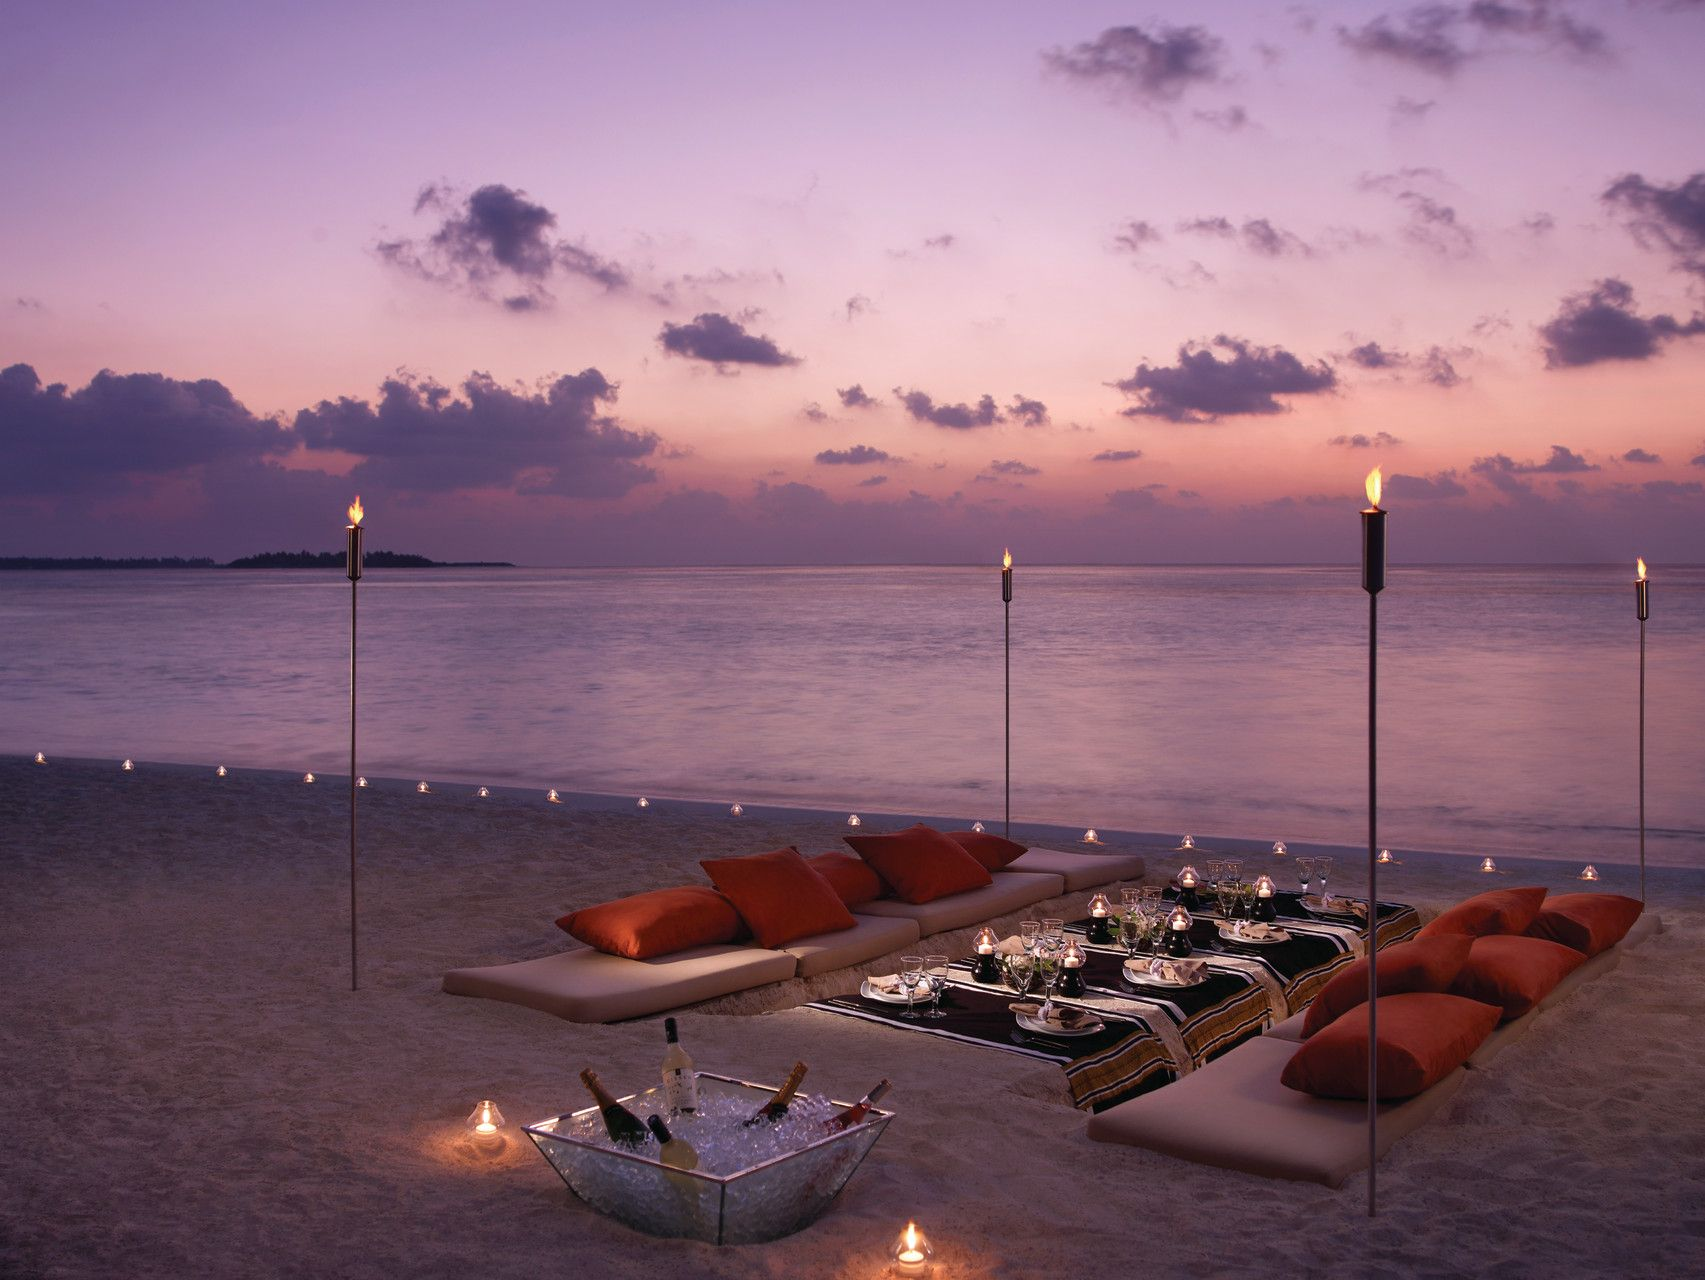 Dine al fresco on pristine sands, with lagoon and ocean views that stretch into the distance ...